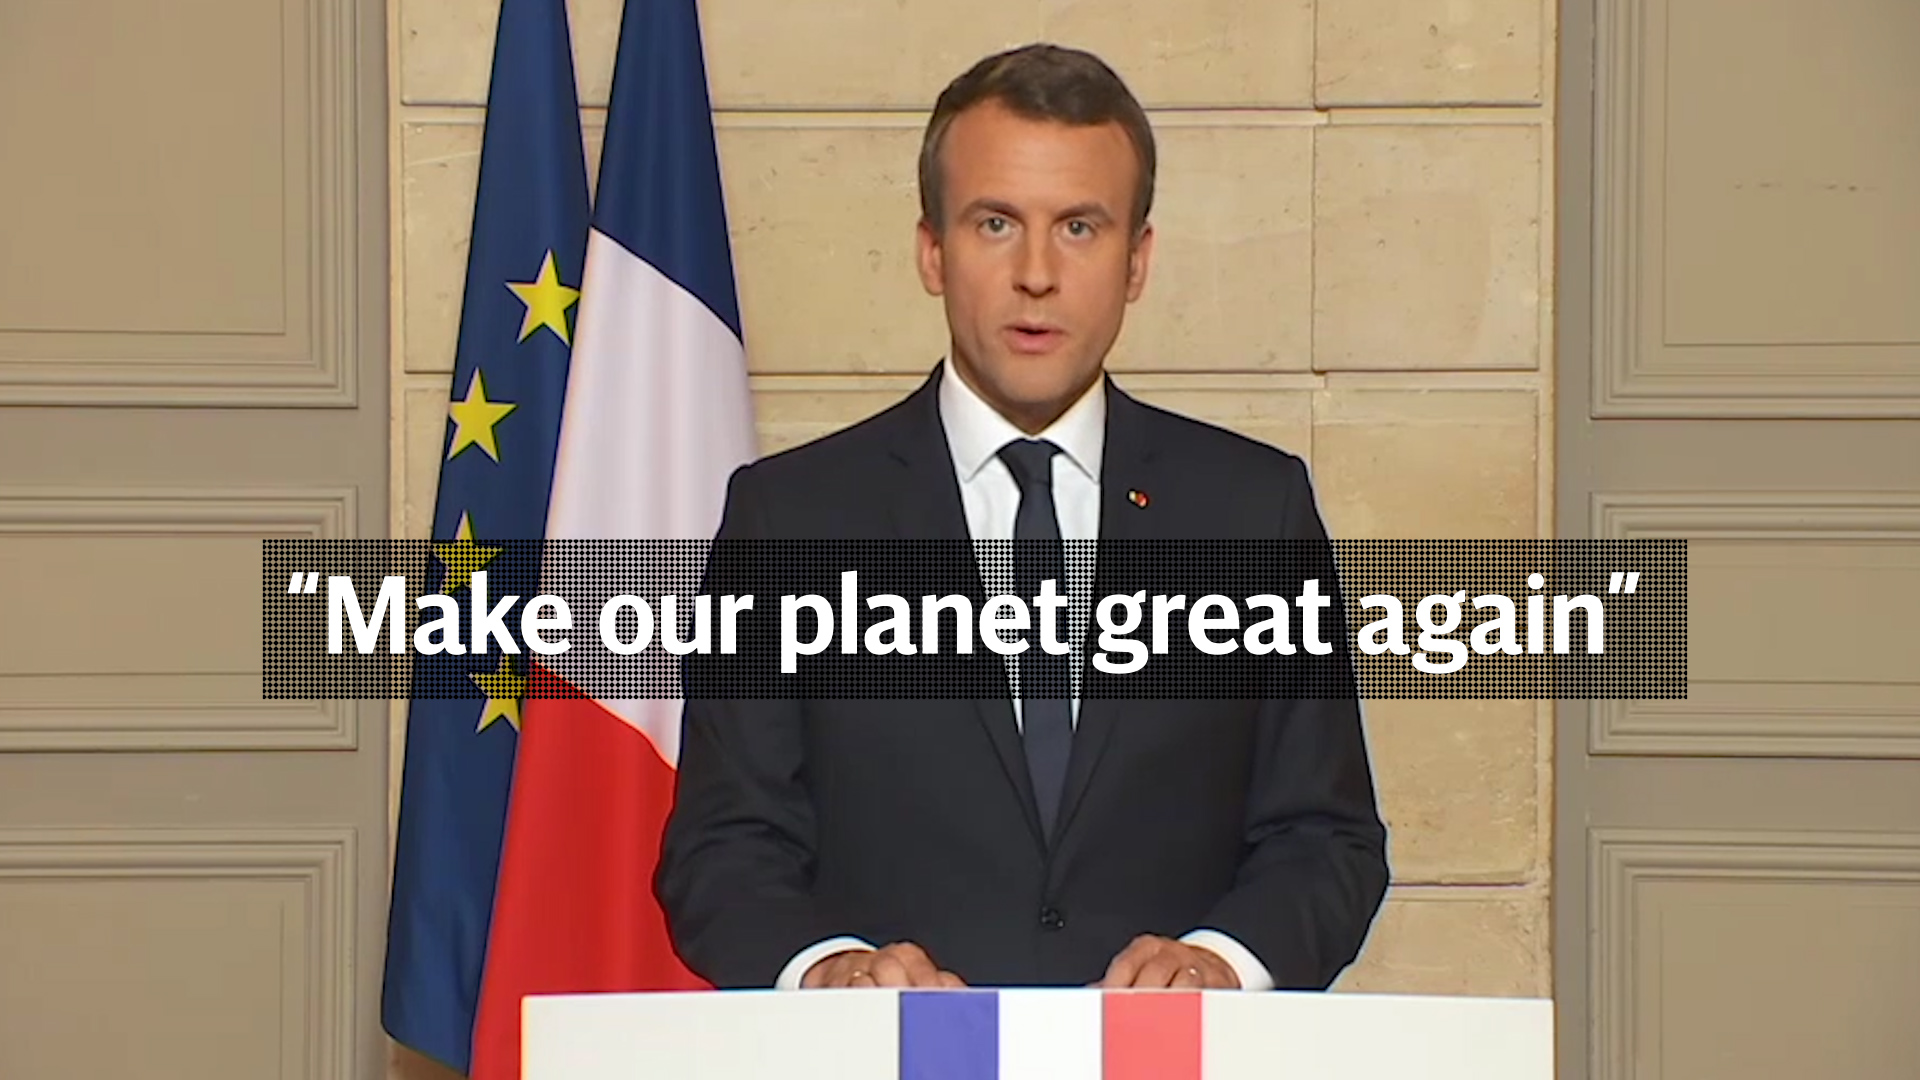 make planet great again- France ban